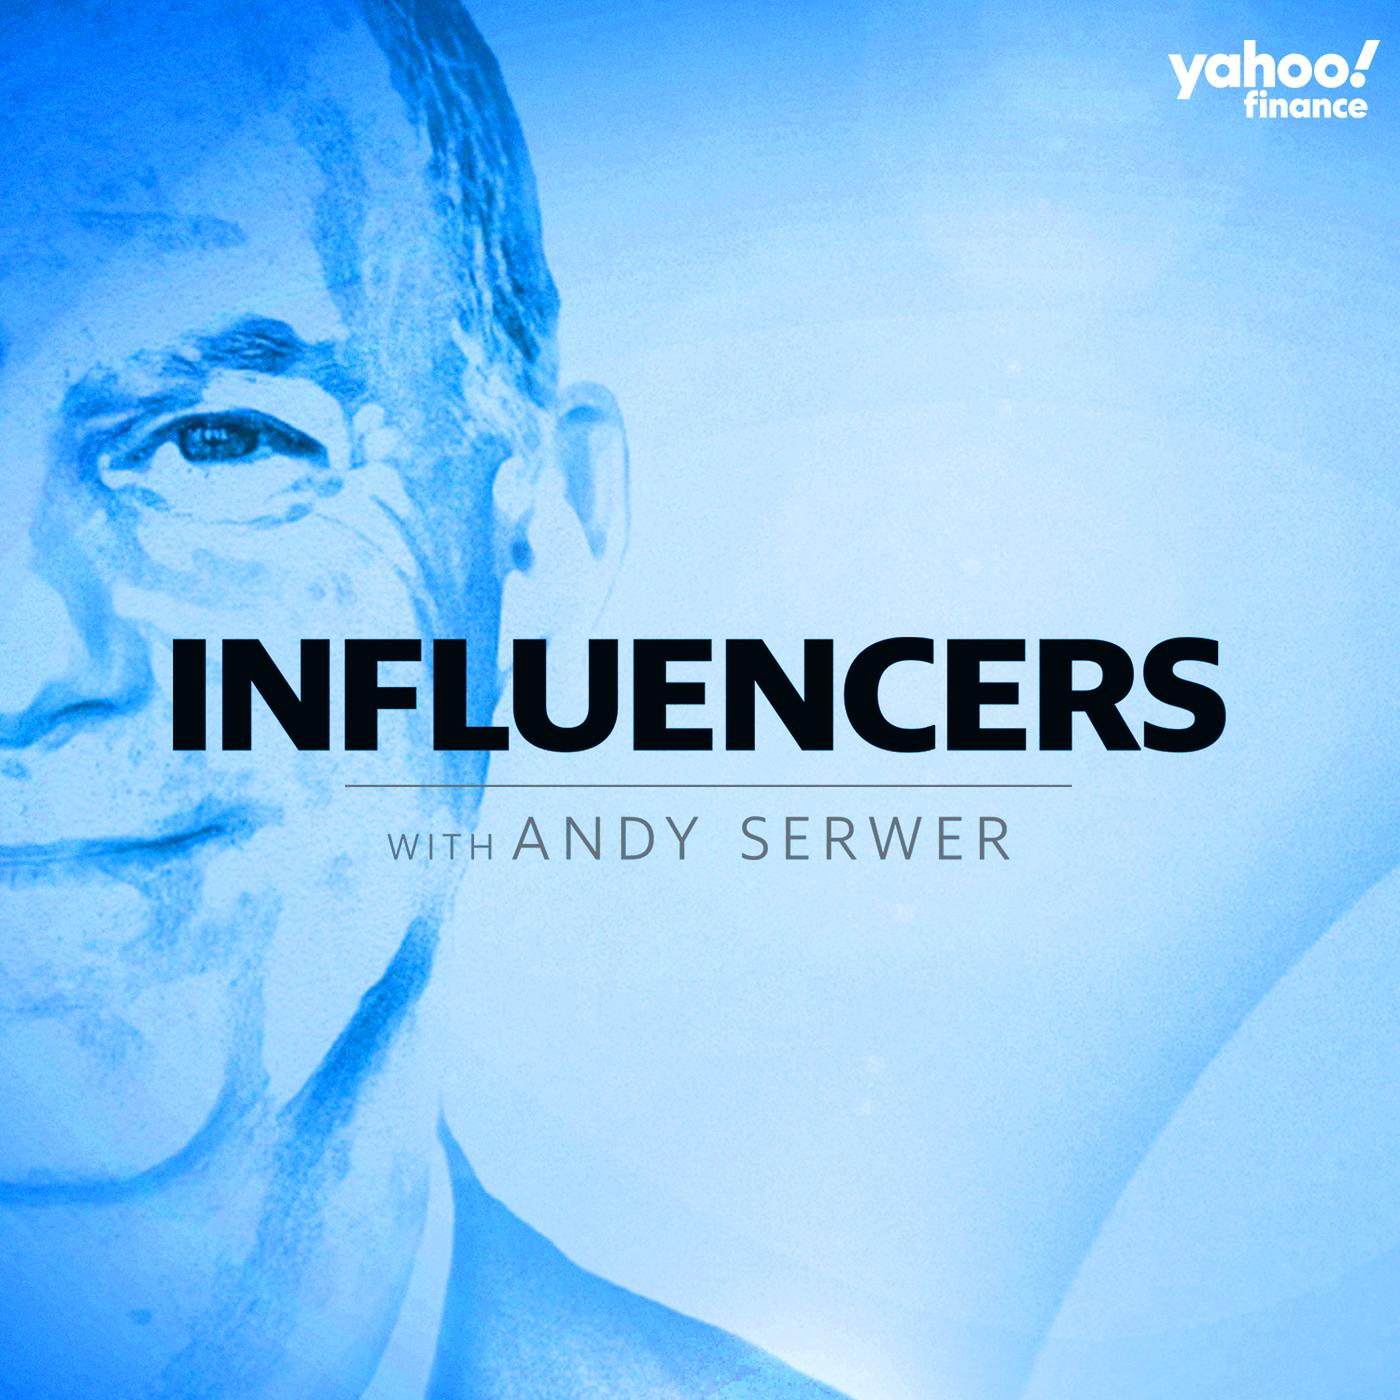 Ex-Cisco Systems CEO, John Chambers joins Influencers with Andy Serwer